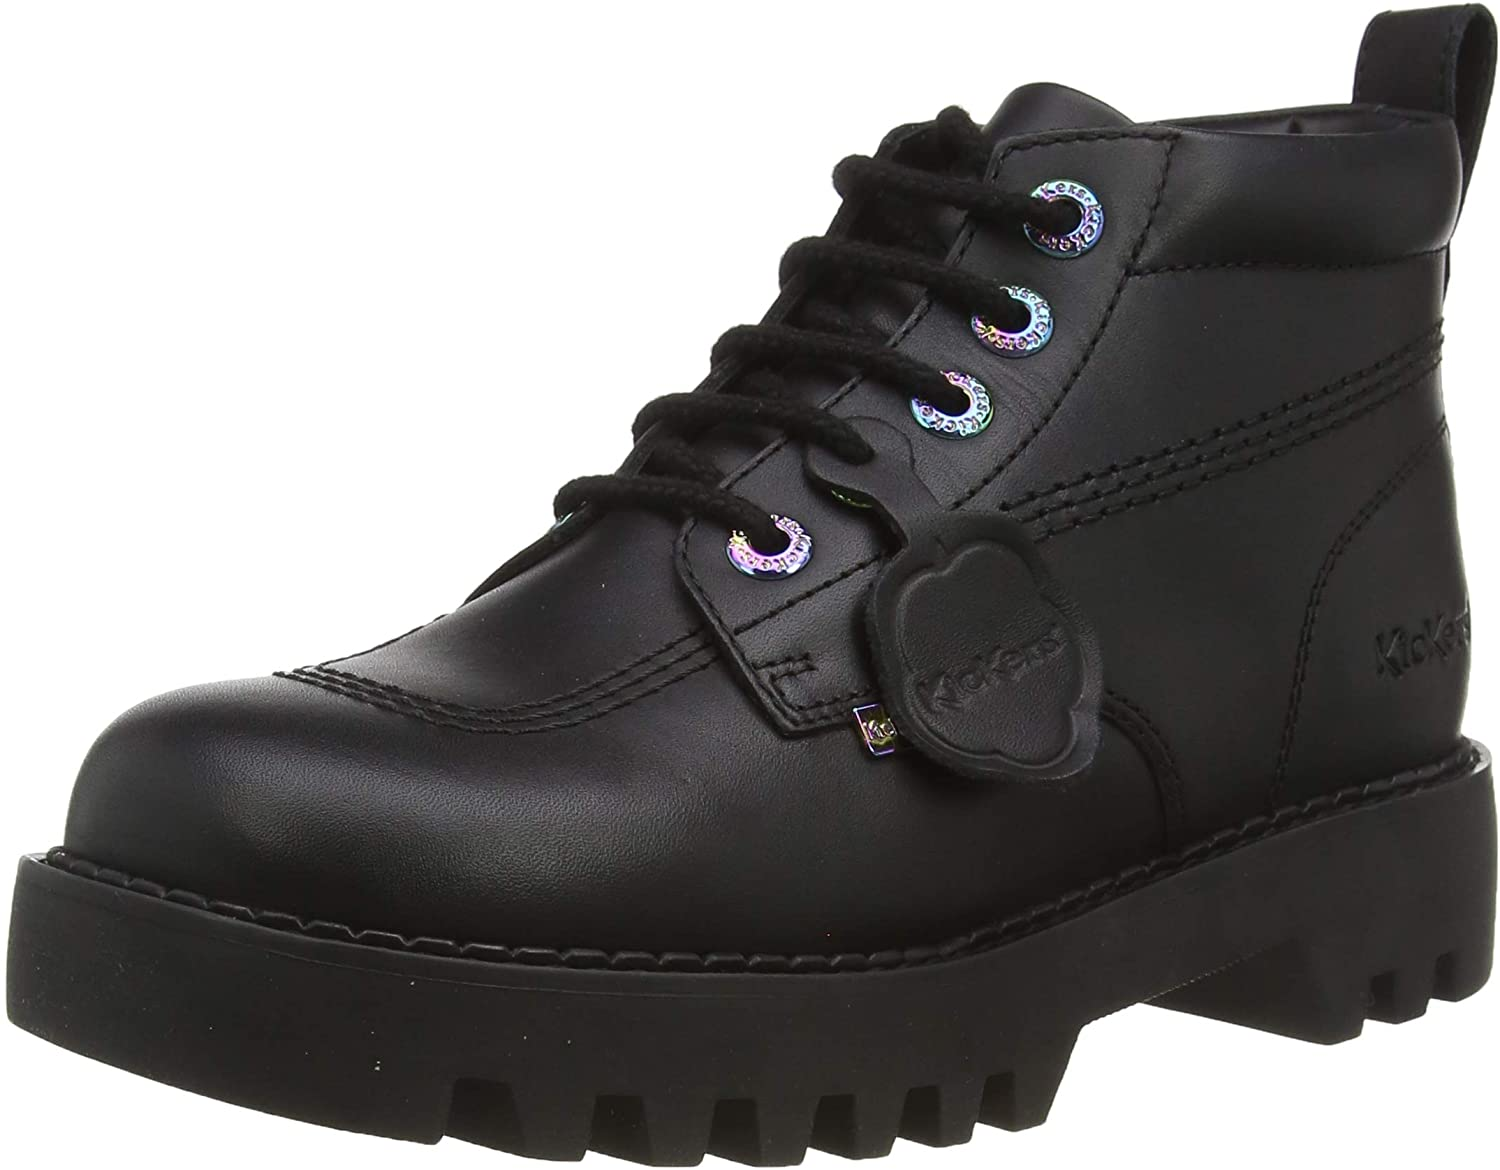 Kickers Women's Ankle Boots